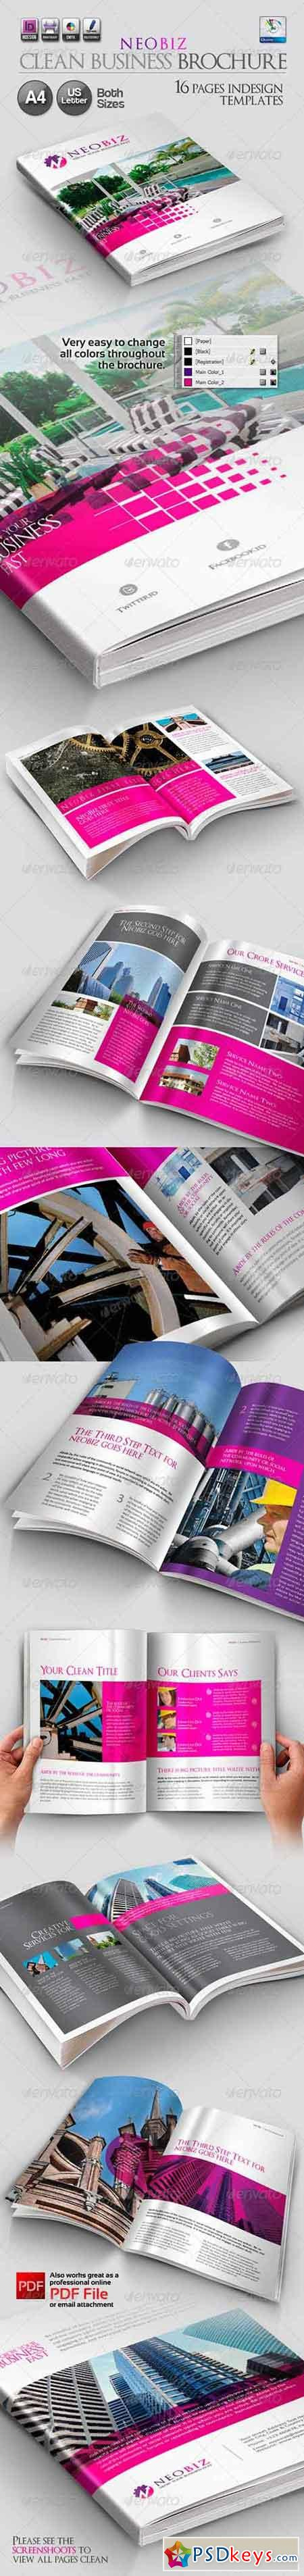 NeoBiz Clean Business Brochure 3218632